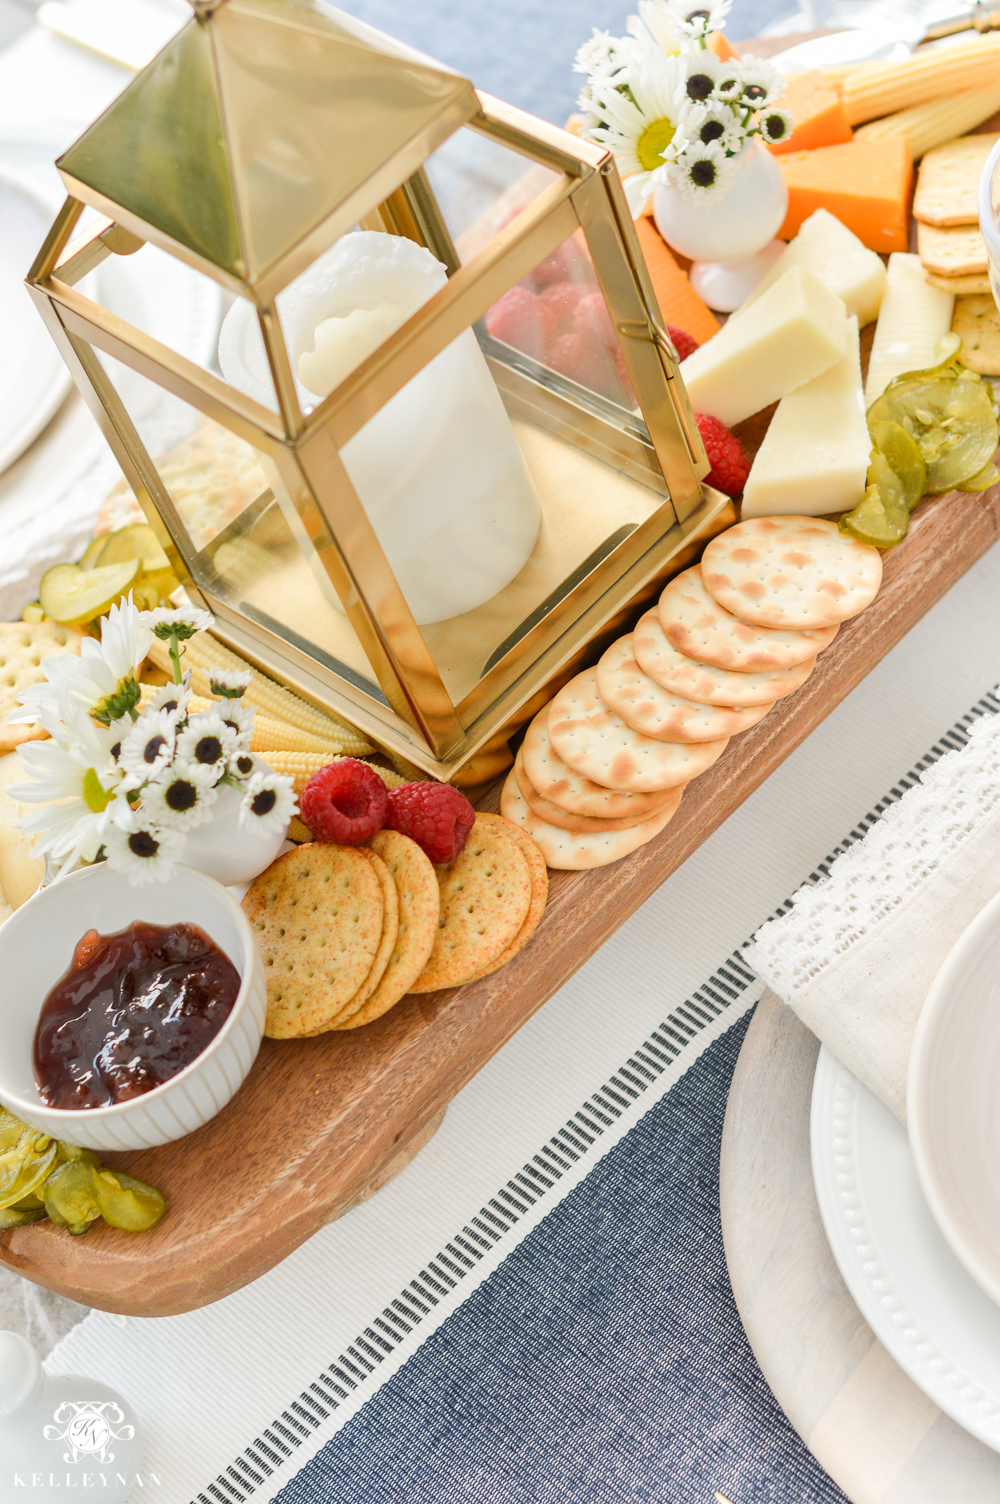 Outdoor Entertaining and Table Ideas with Cheese board appetizer centerpieces- pretty cheese board